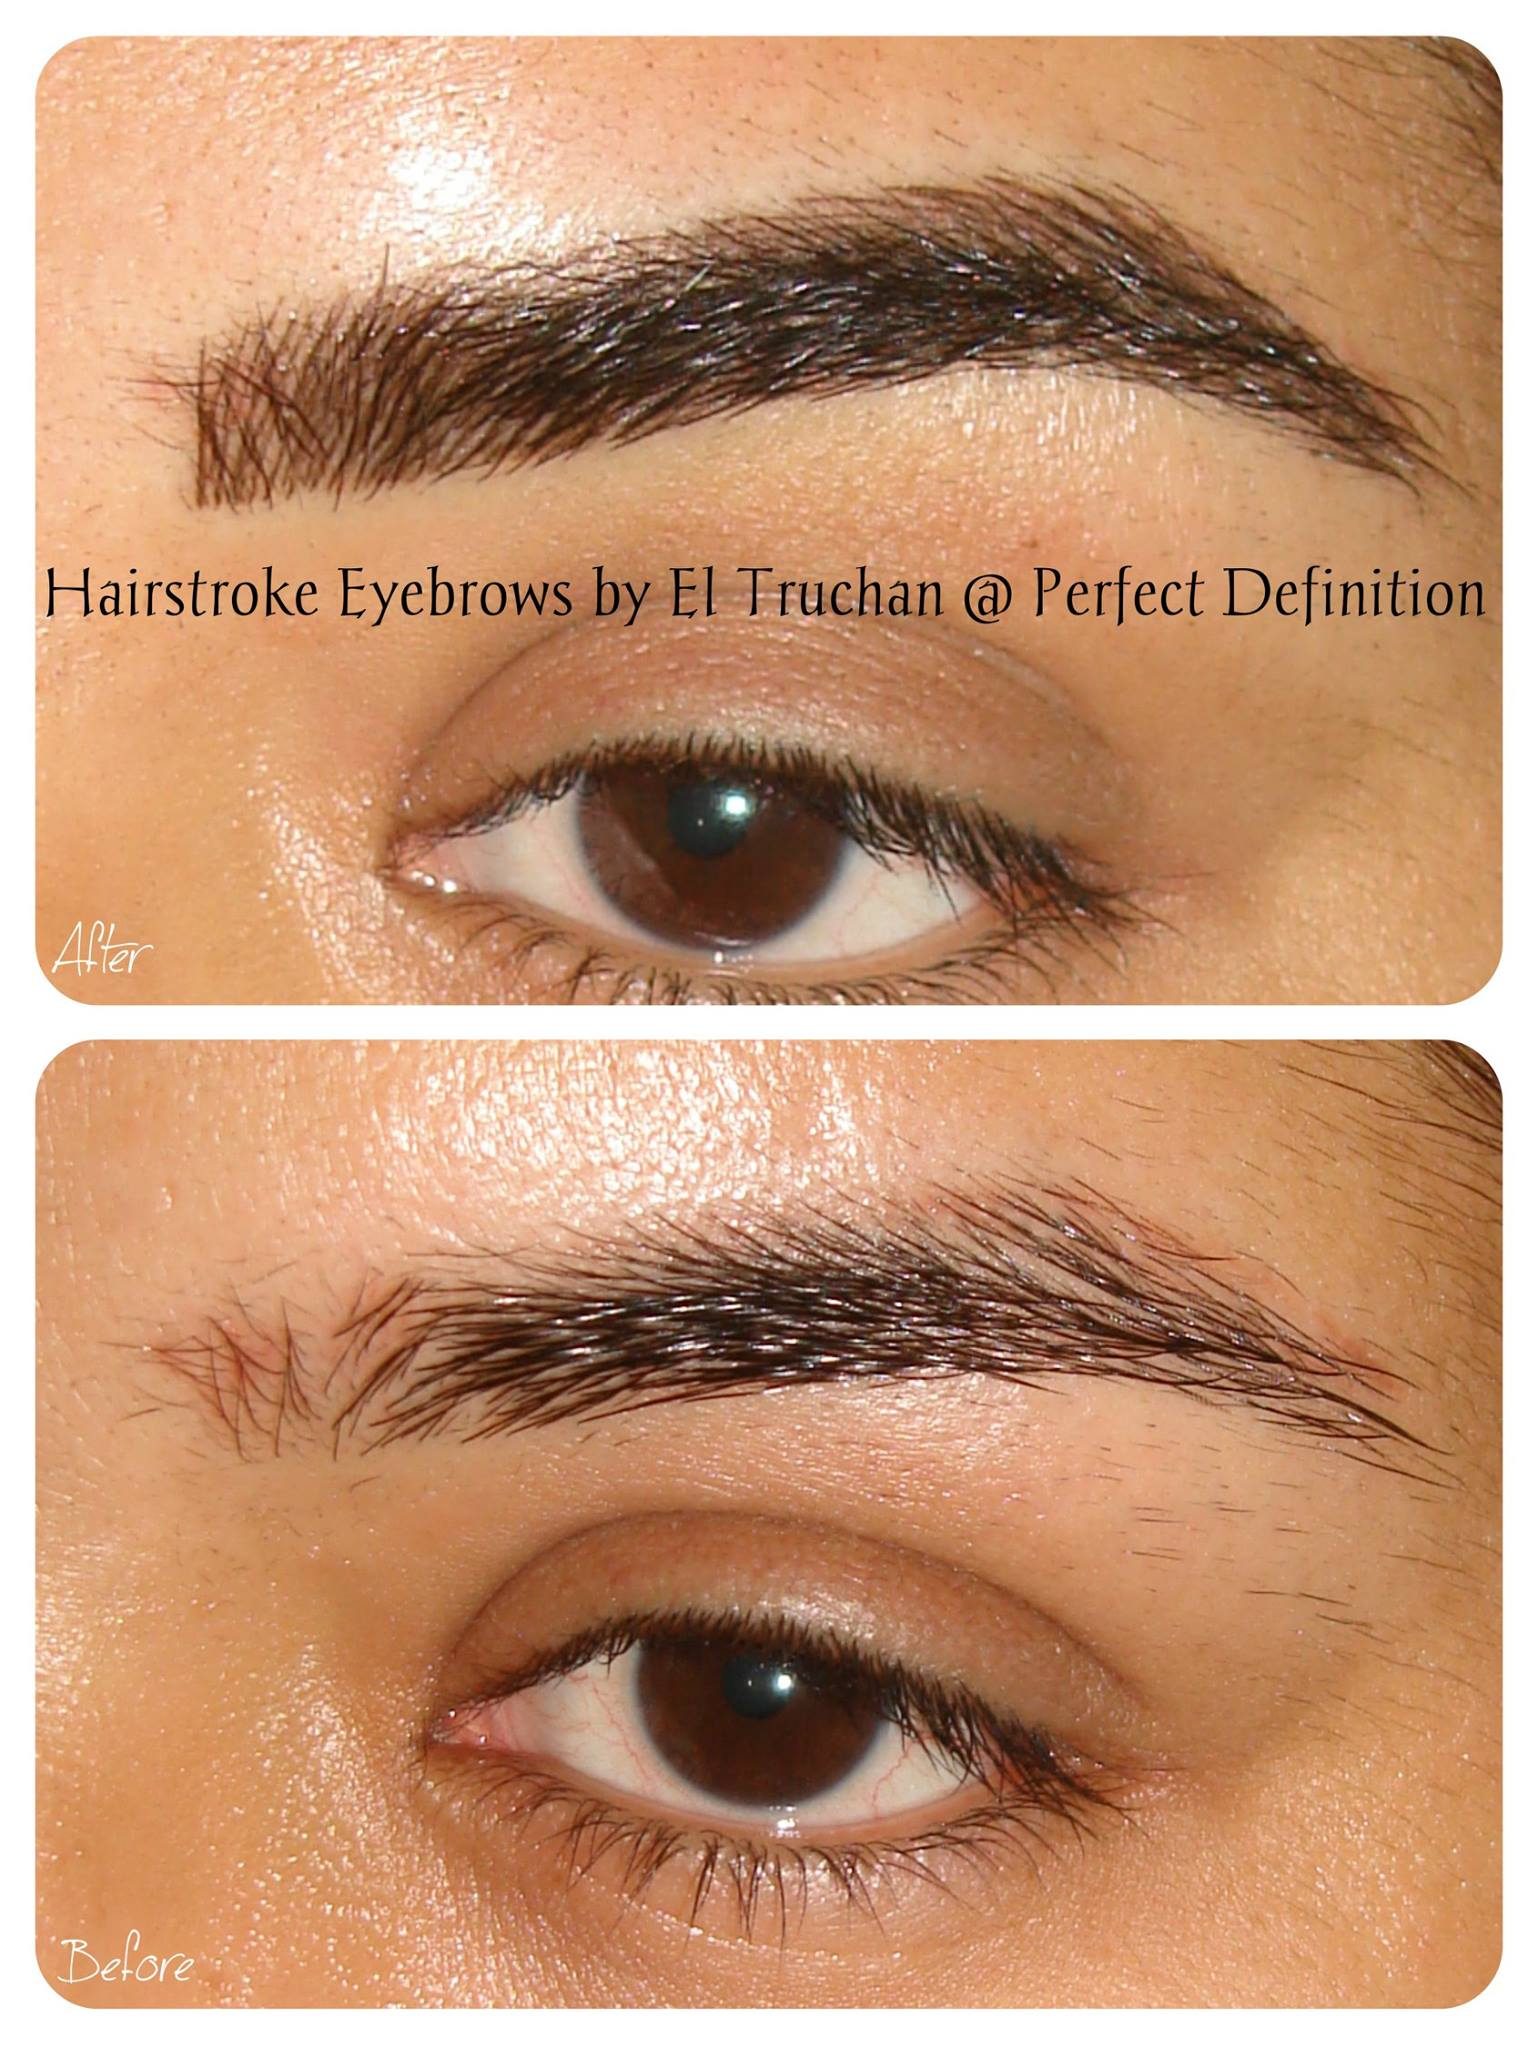 Full Eyebrow Hairstroke by El Truchan